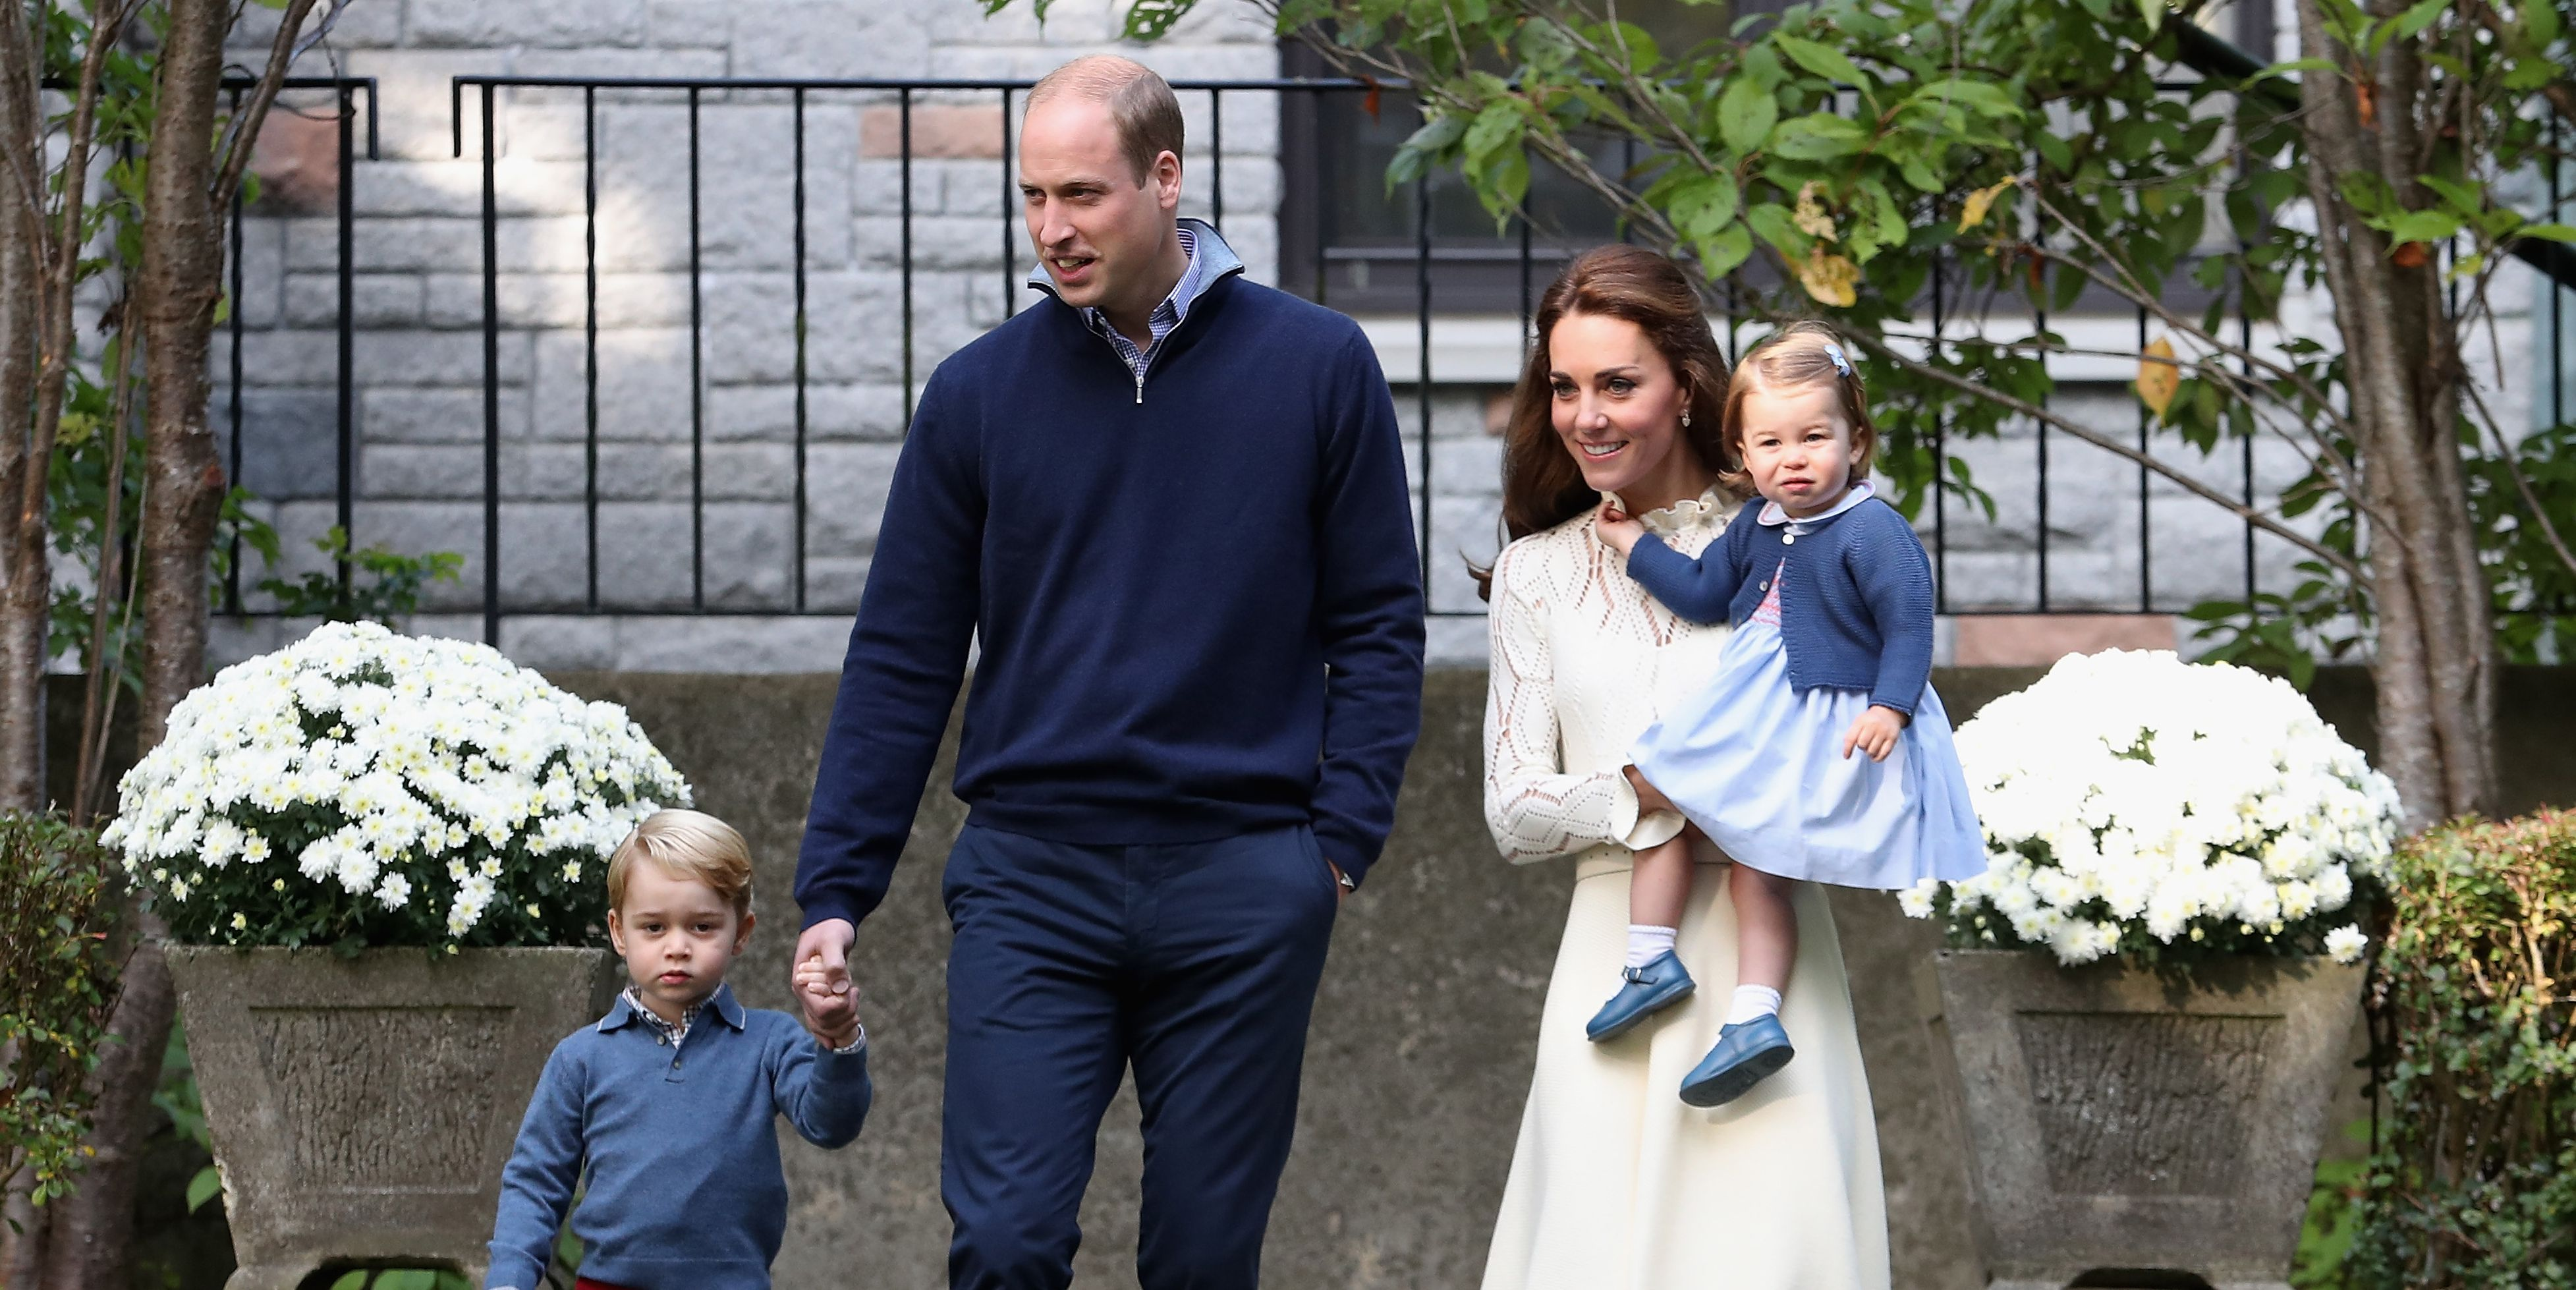 Why You Won't Be Seeing Prince William or Kate Middleton This Week